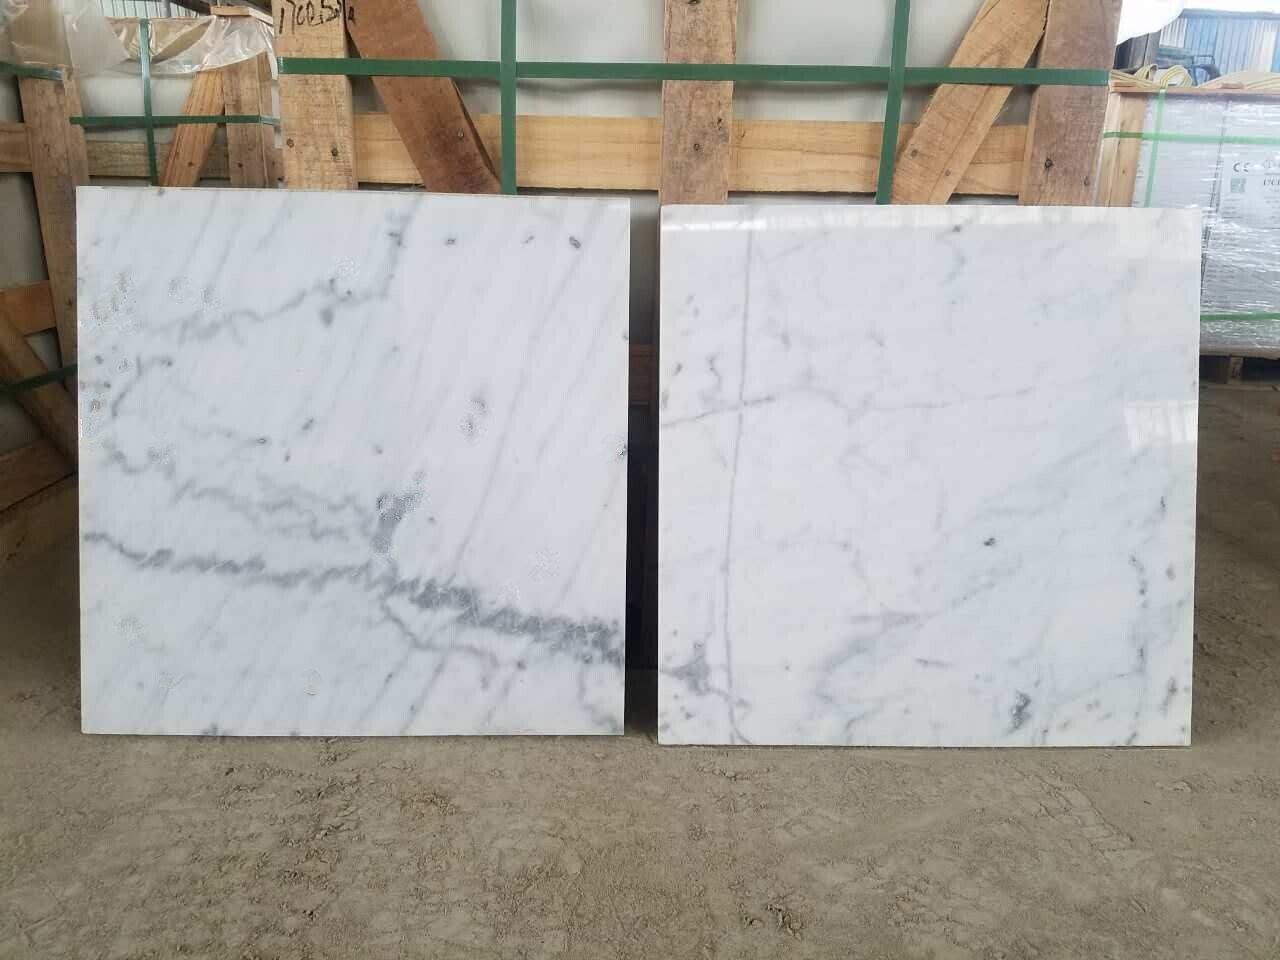 China new natural stone polished white marble wall flooring tiles china new natural stone polished white marble wall flooring tiles price dailygadgetfo Choice Image